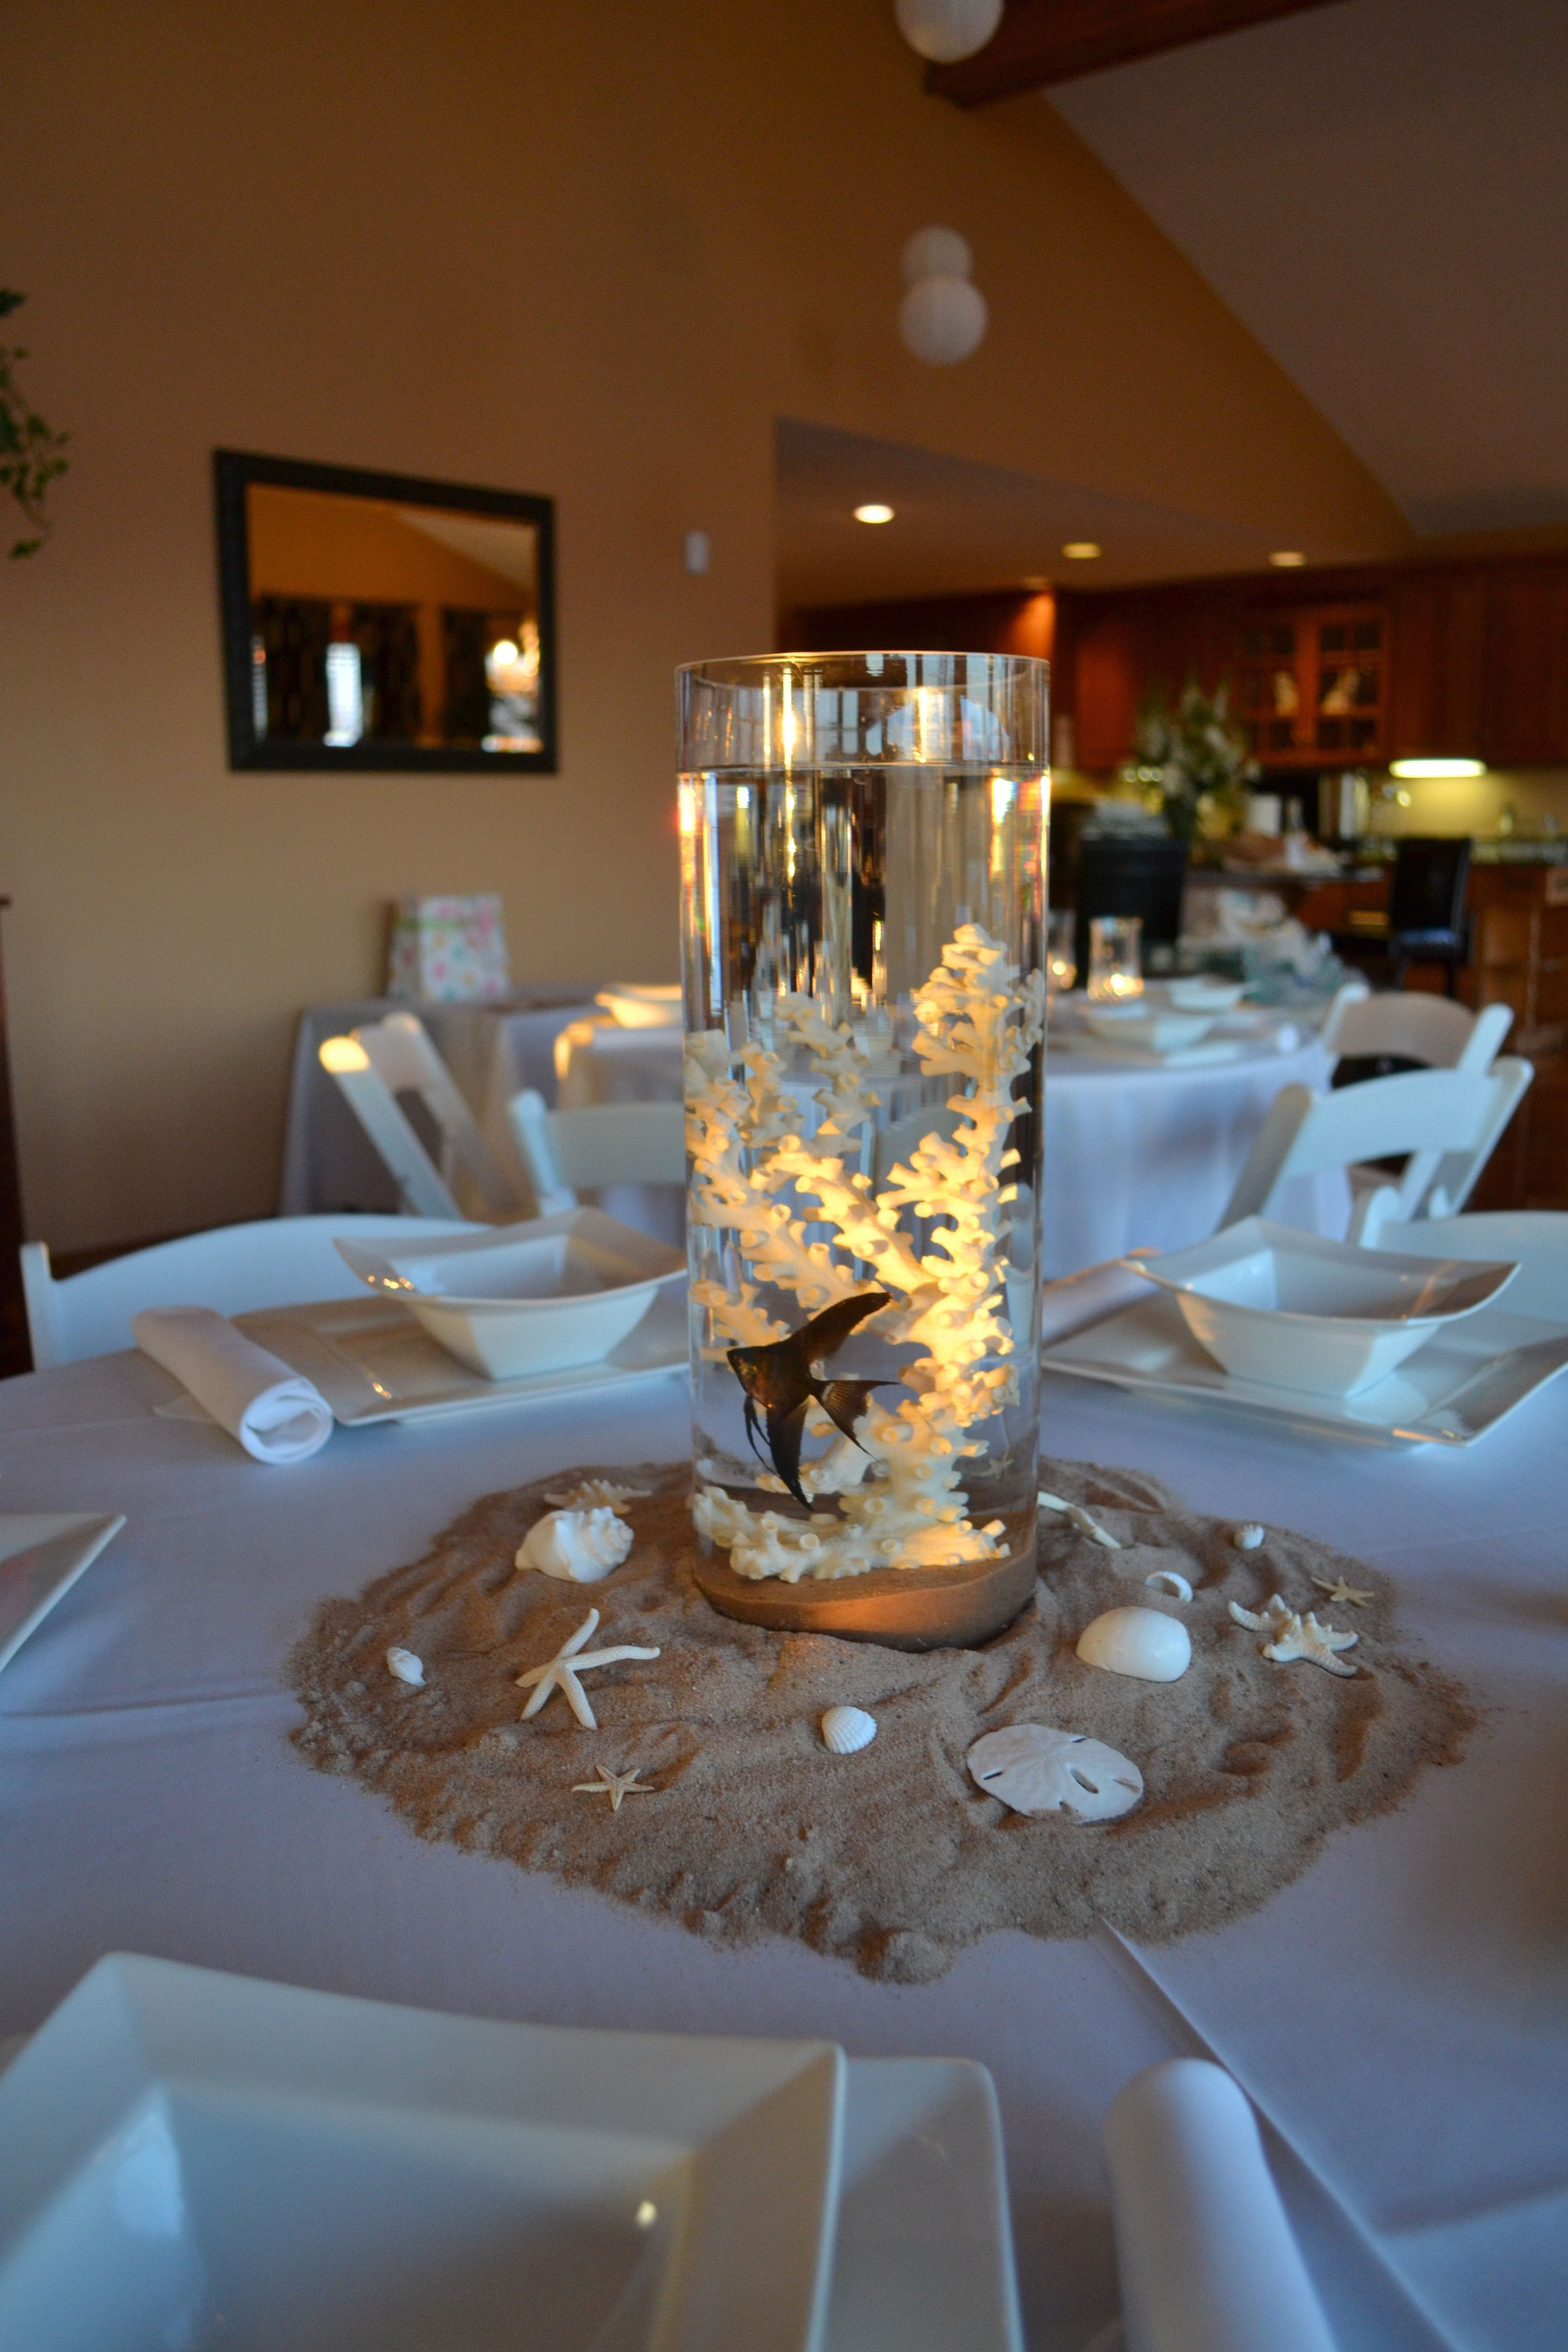 Silver Wedding Decorations For Tables Beach Wedding Decorations Beach Theme Wedding Beach Wedding Centerpieces